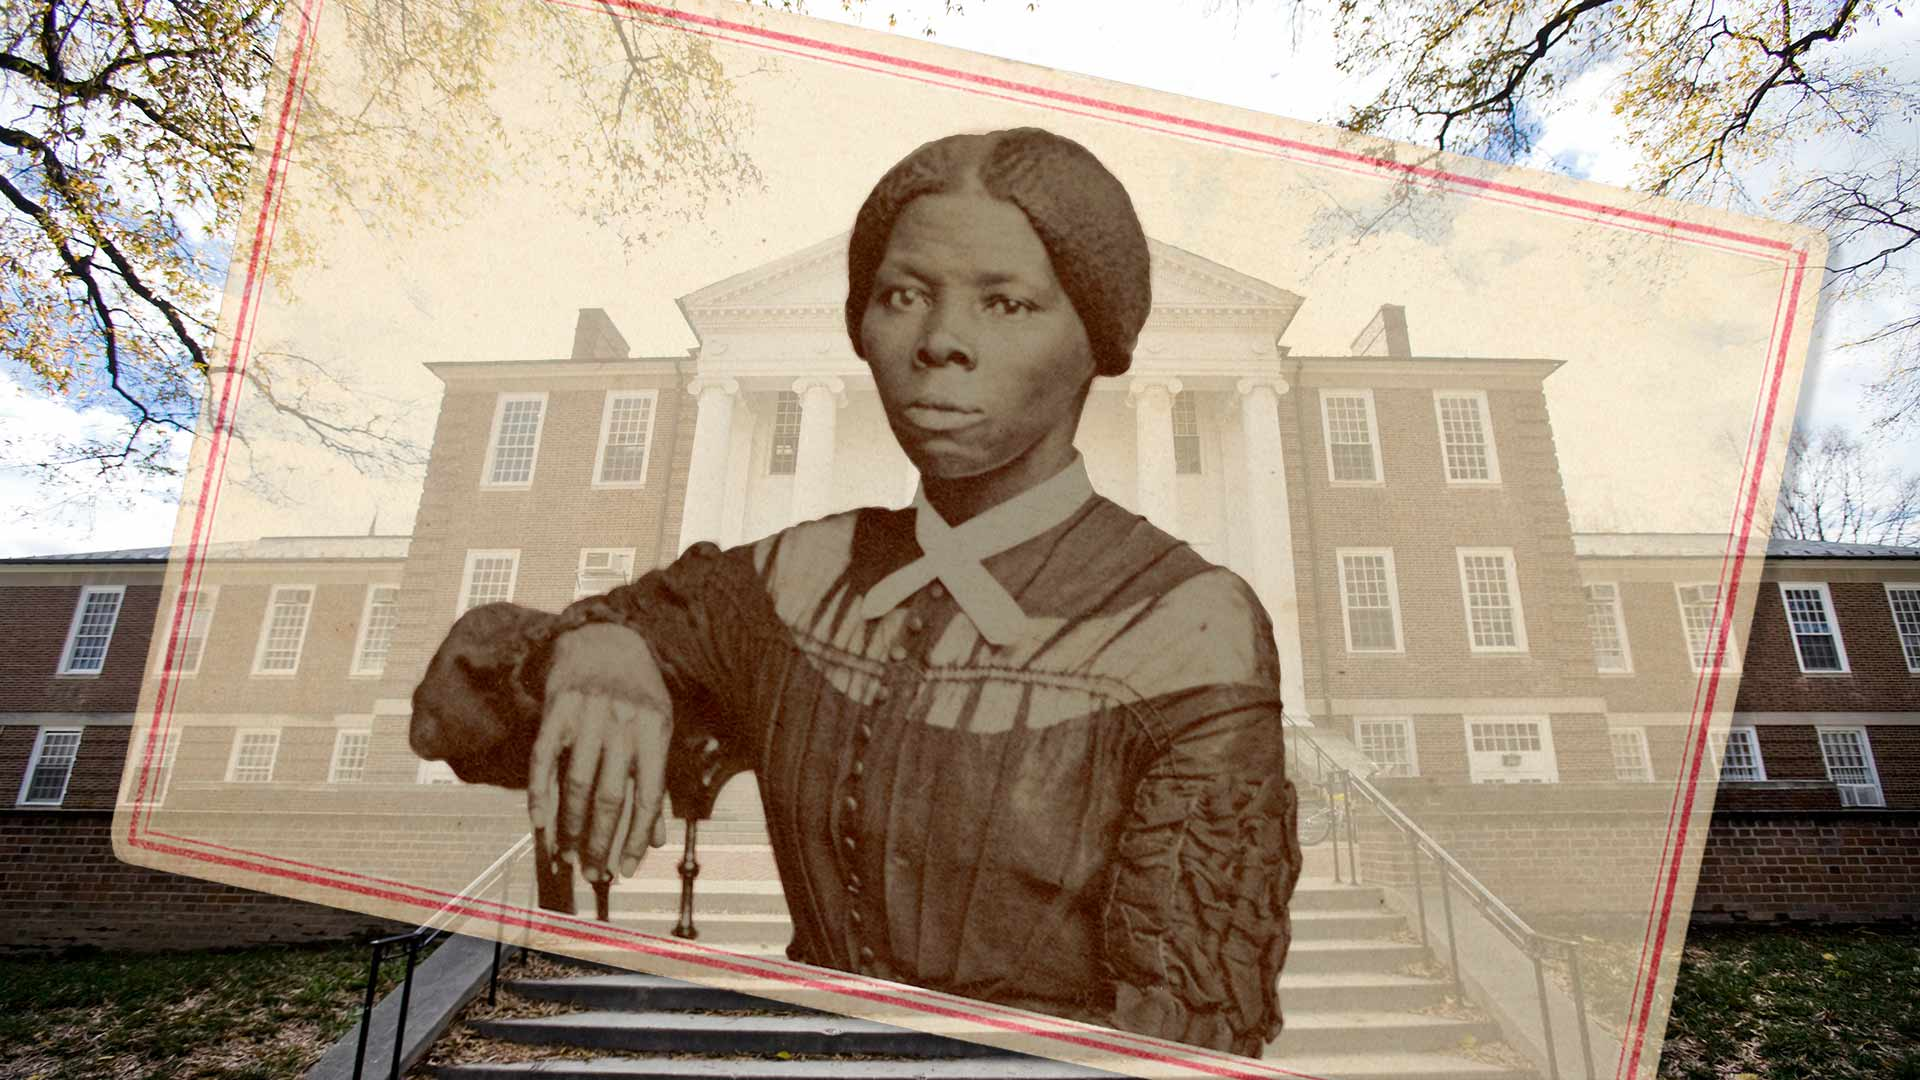 The newly renamed Harriet Tubman Department of Women, Gender, and Sexuality Studies honors a Maryland icon of freedom, seen in a 19th-century photograph superimposed on Woods Hall, where the department is based. (Woods Hall image by John T. Consoli; Tubman image credit: National Museum of African American History and Culture, Library of Congress; Collage by Stephanie S. Cordle)